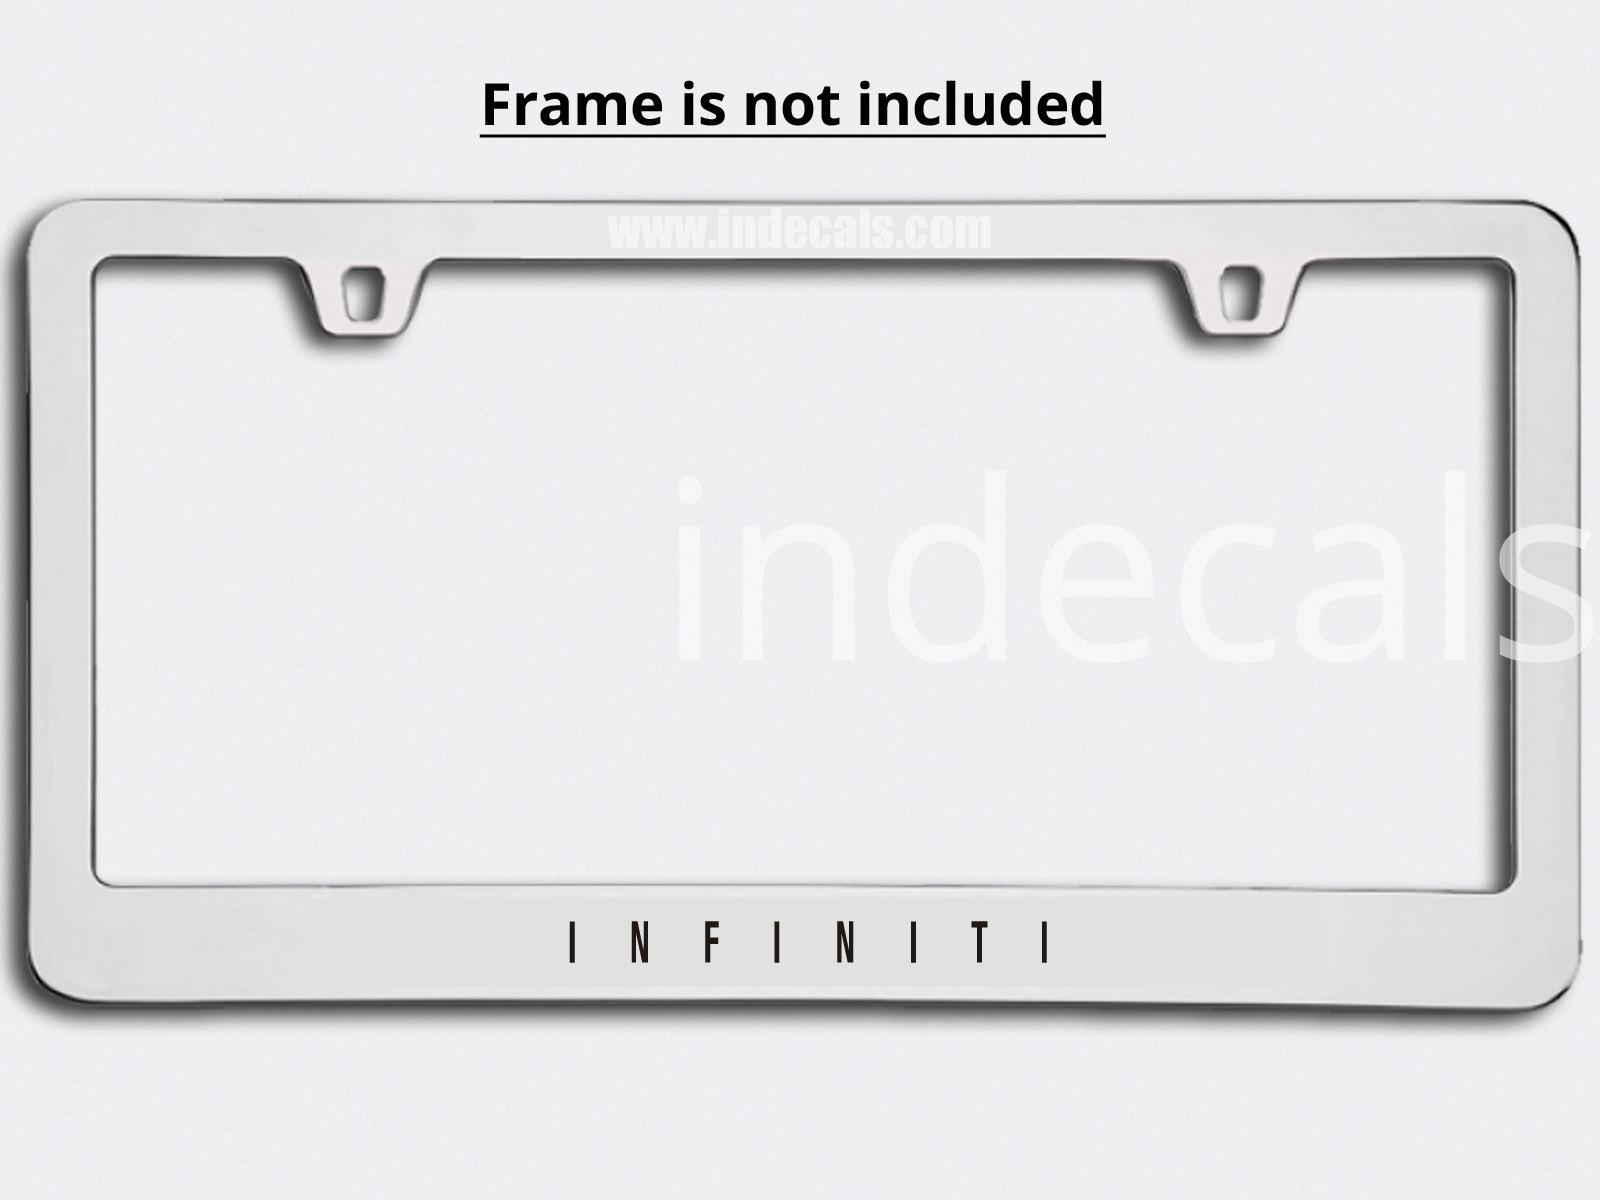 3 x Infiniti Stickers for Plate Frame - Black